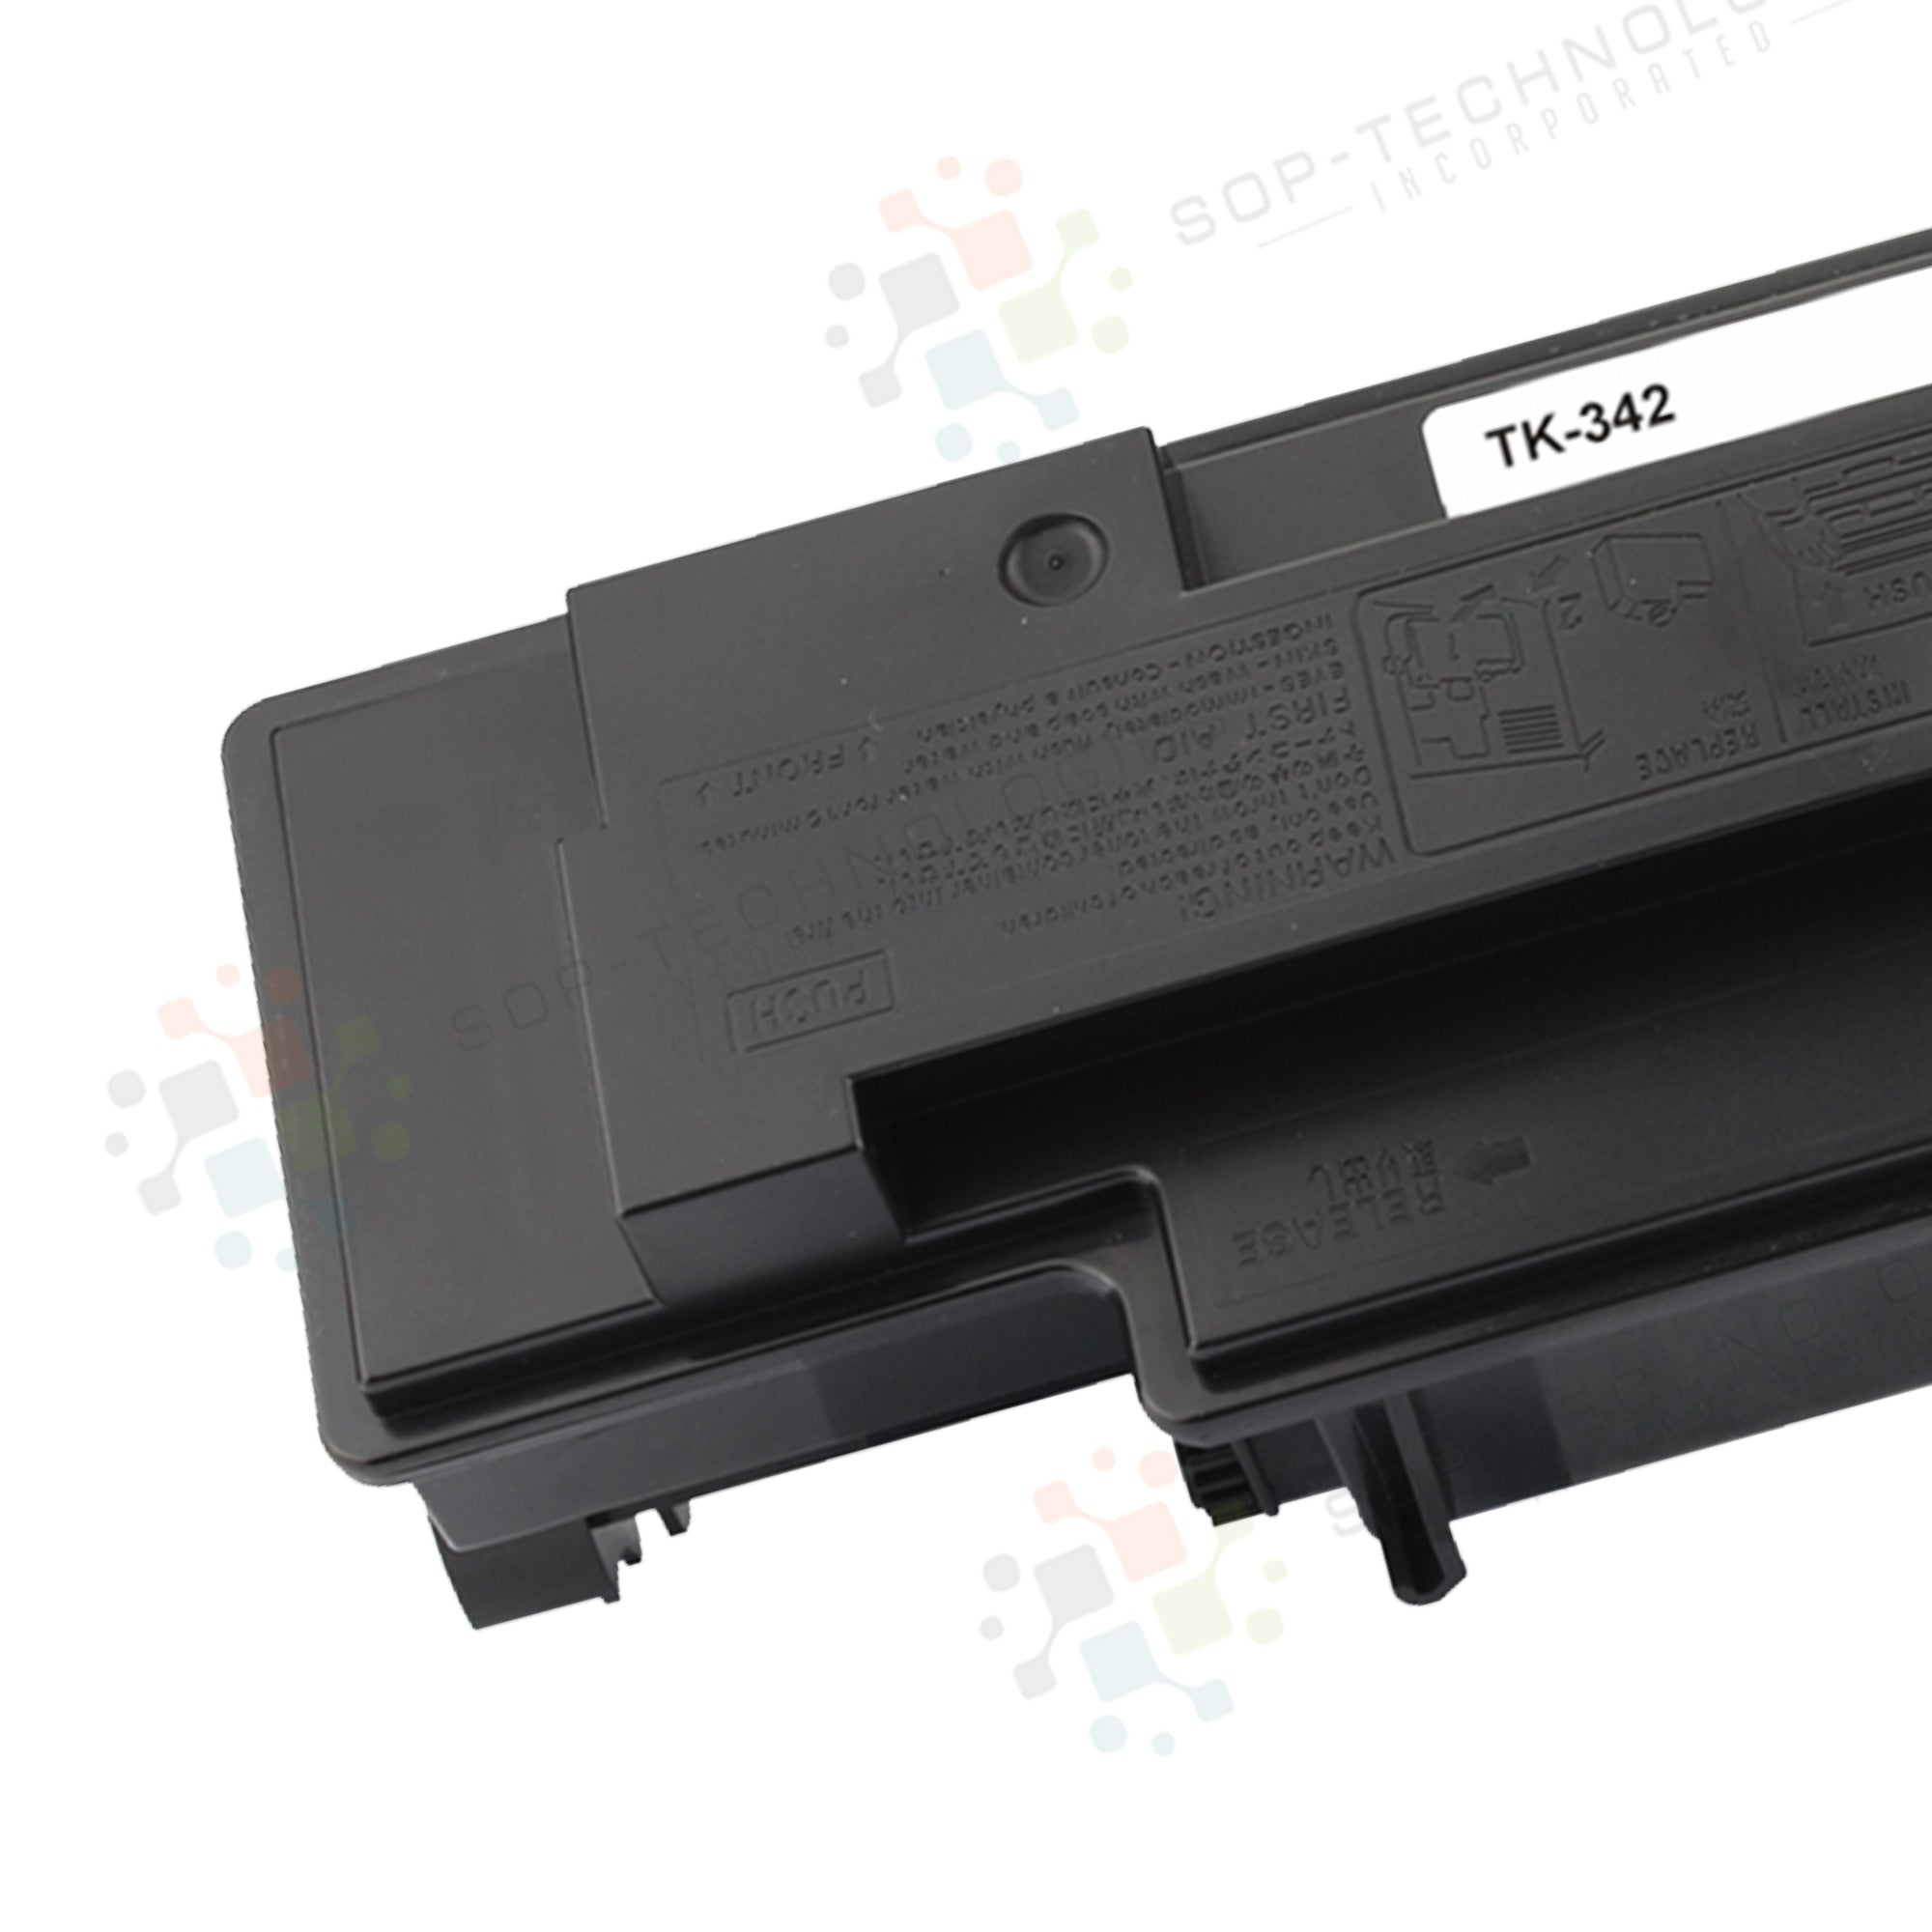 3 Pack Toner Cartridge for Kyocera FS-2020D - SOP-TECHNOLOGIES, INC.